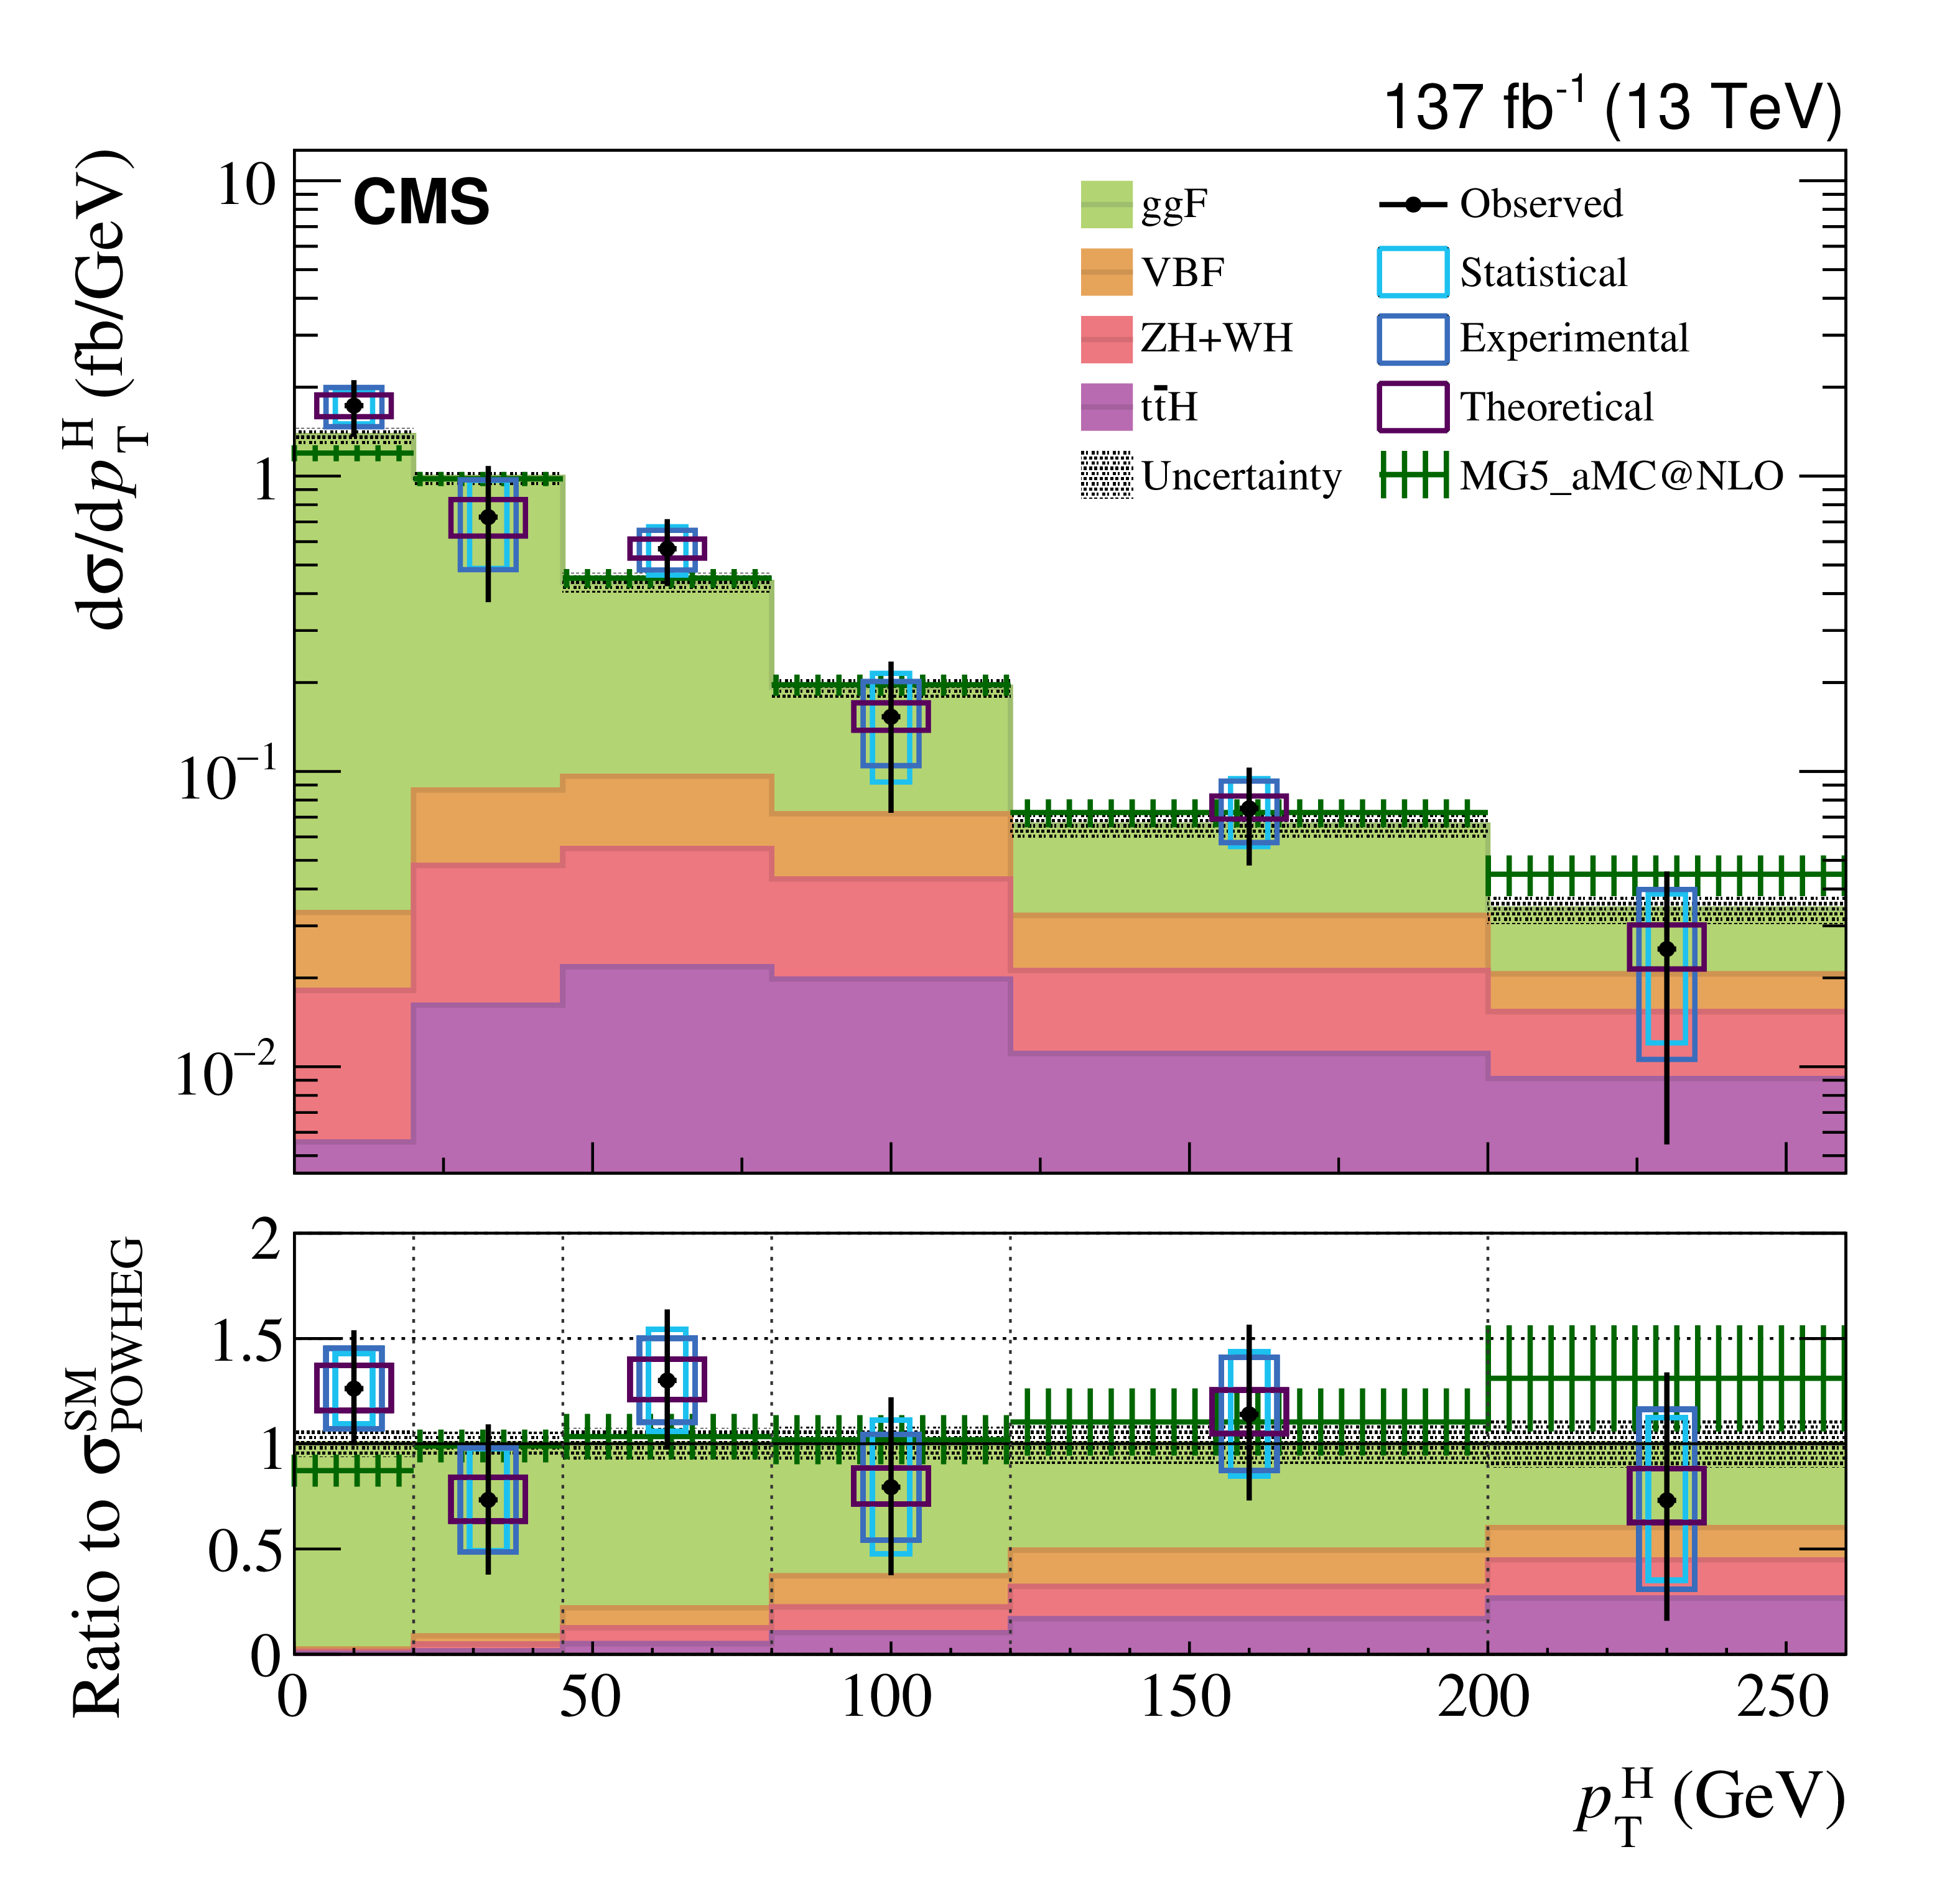 : Higgs boson measured differential cross-section as a function of its transverse momentum.